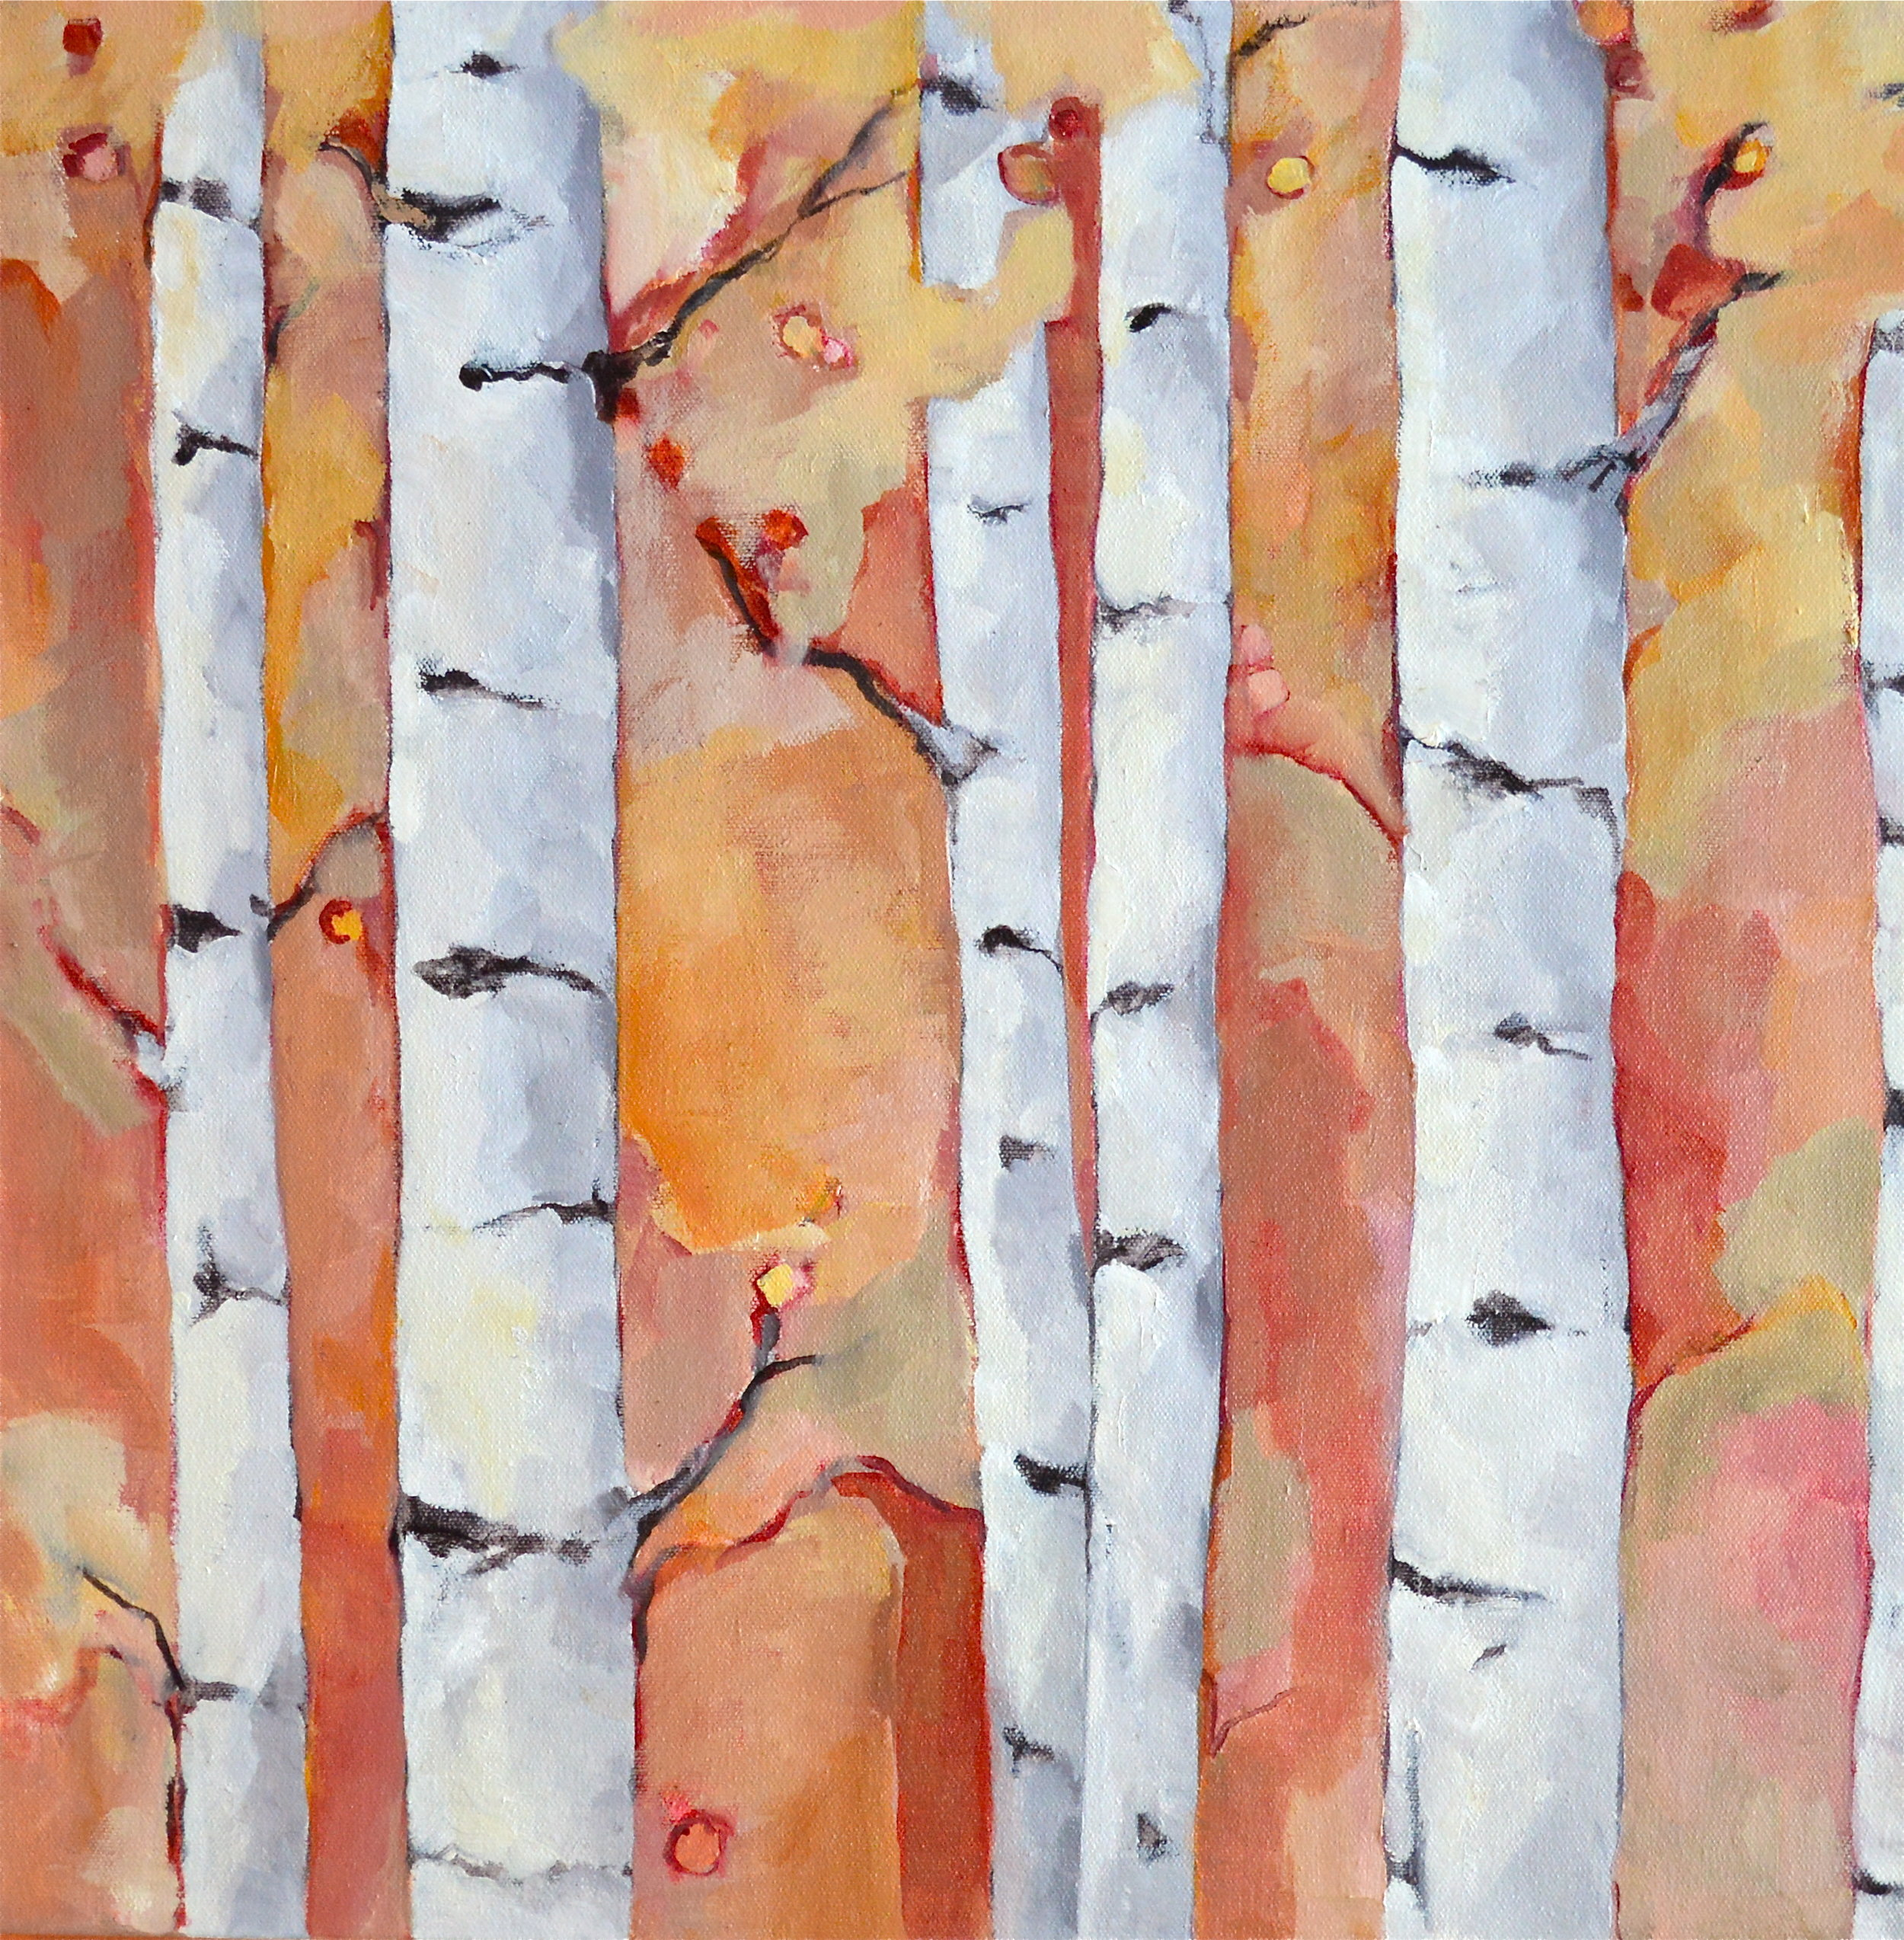 "Fall Birches #1, oil on canvas, 24x24"" SOLD"